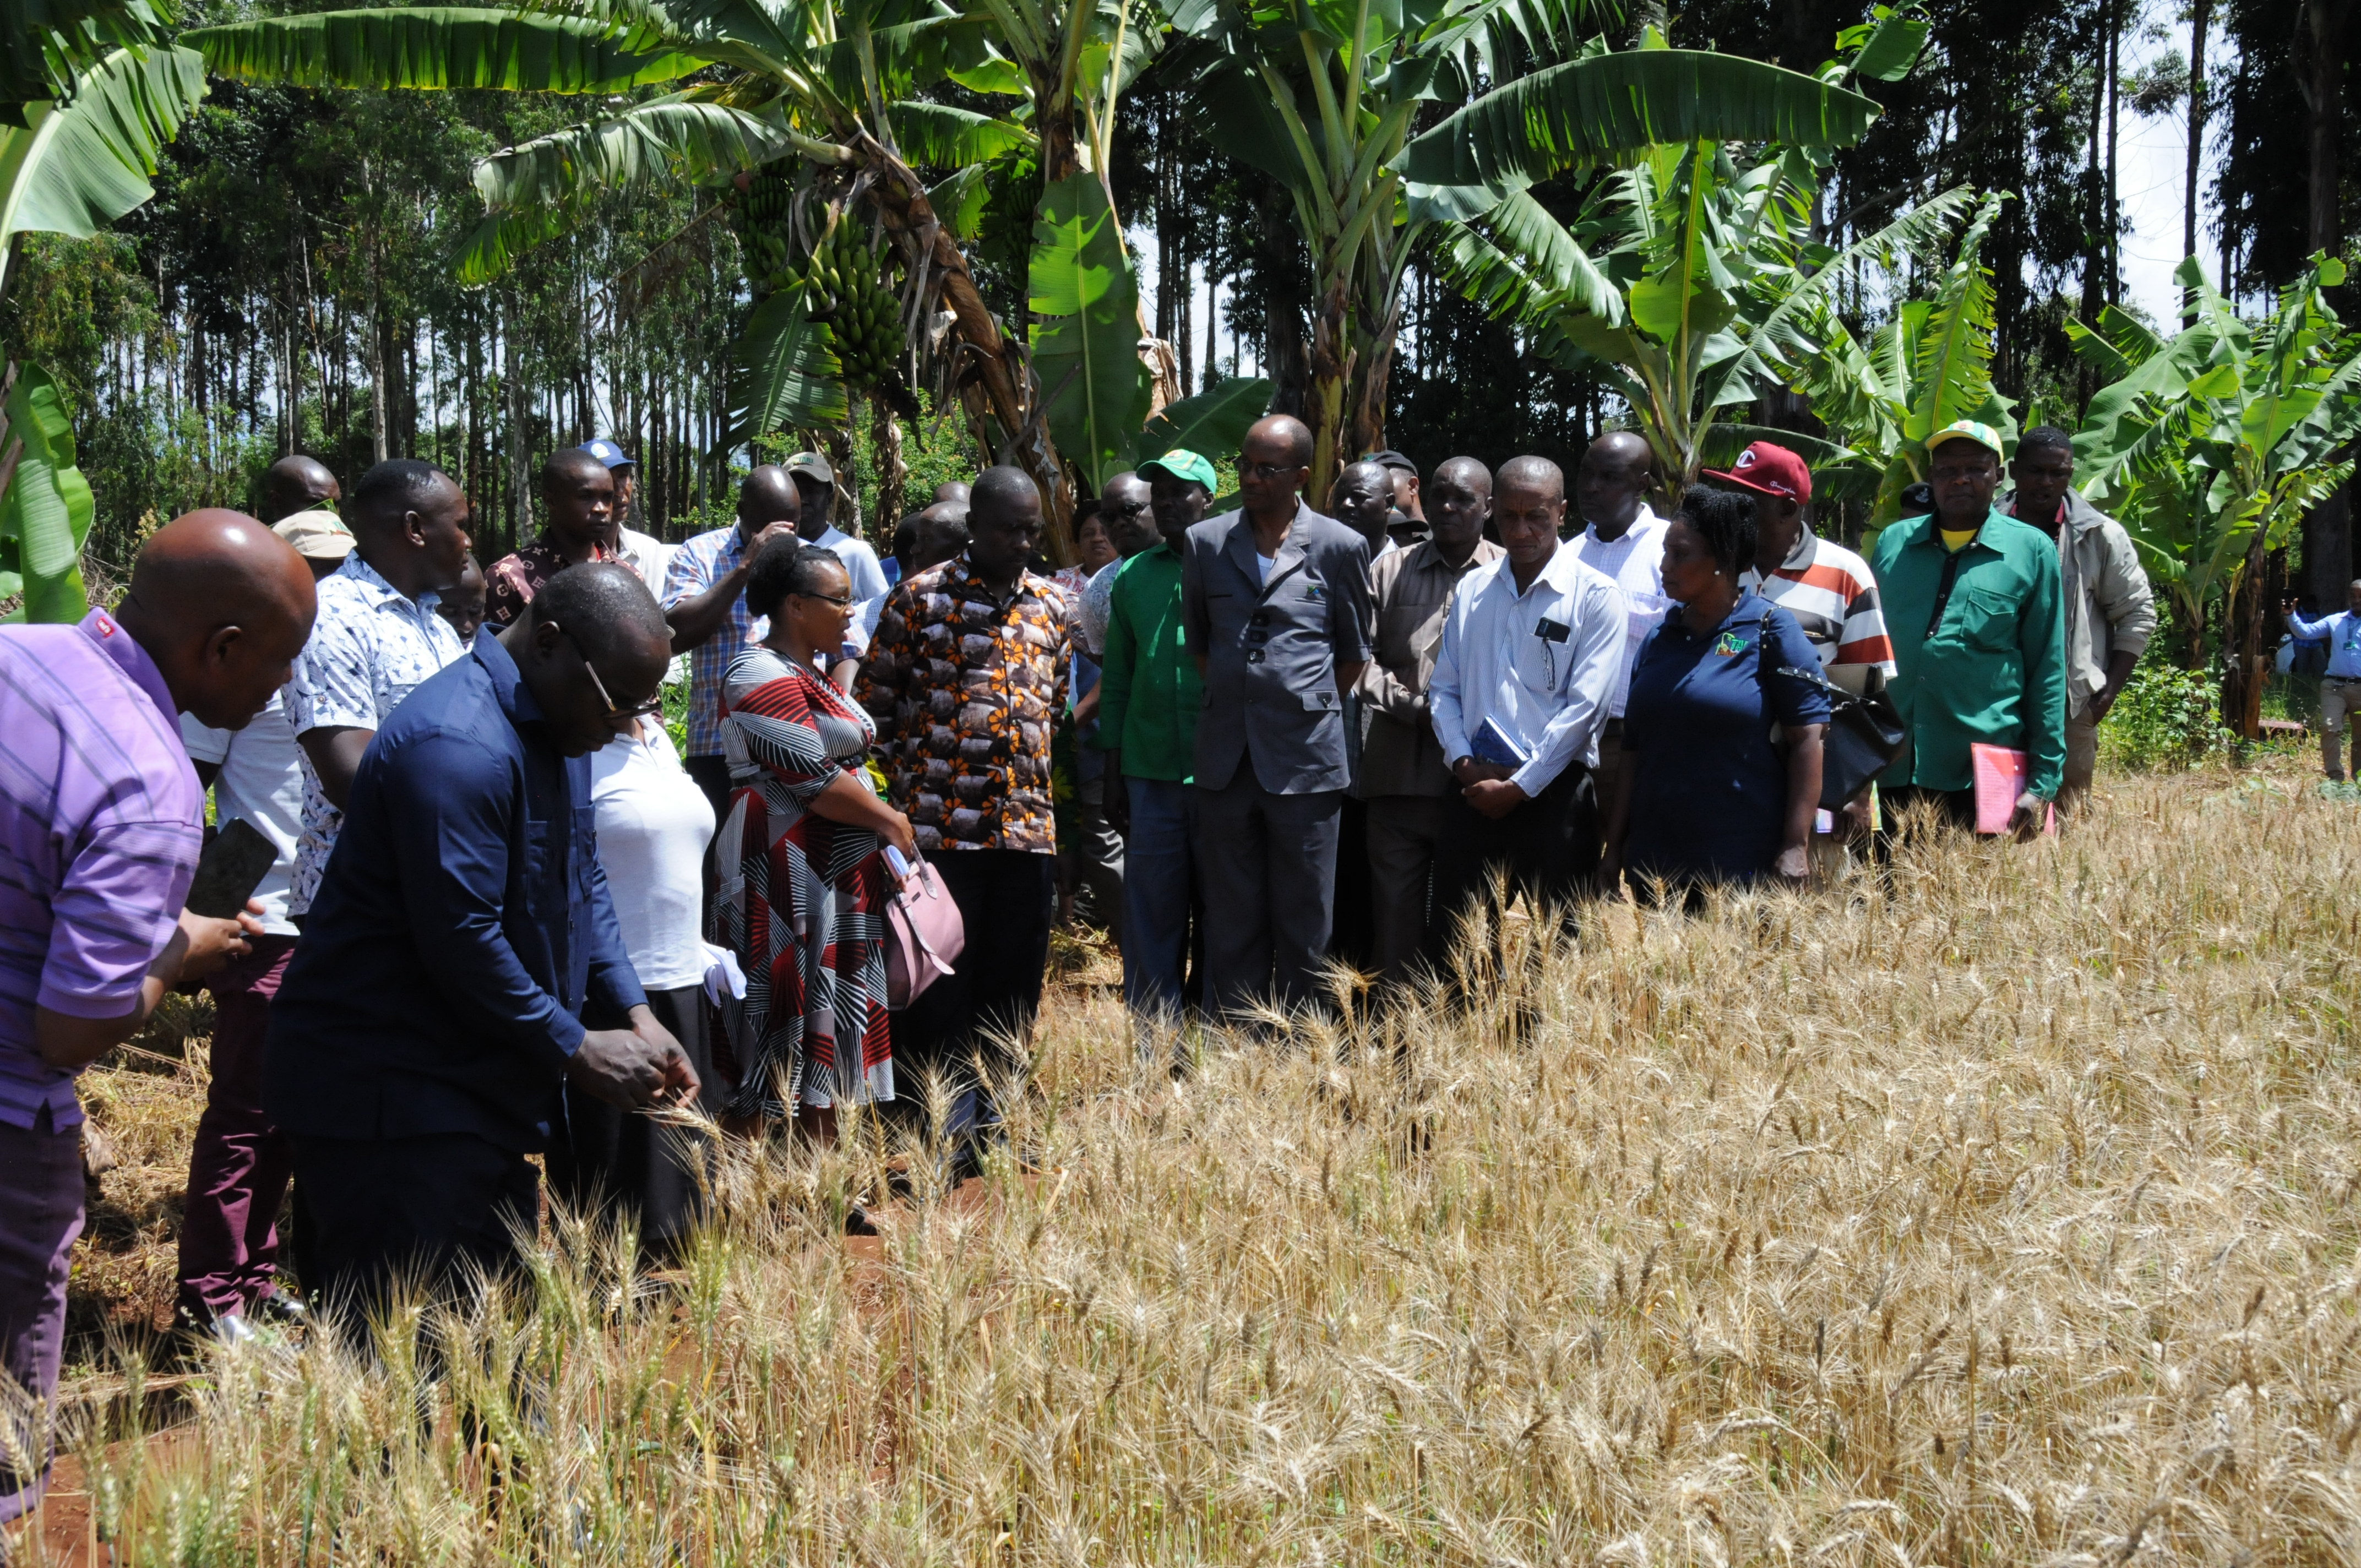 Ms Ishika Mshaghuley from TARI HQ gives details on wheat varieties to government officials and farmers during wheat field day at Mwangaza, Siha District, Kilimanjaro